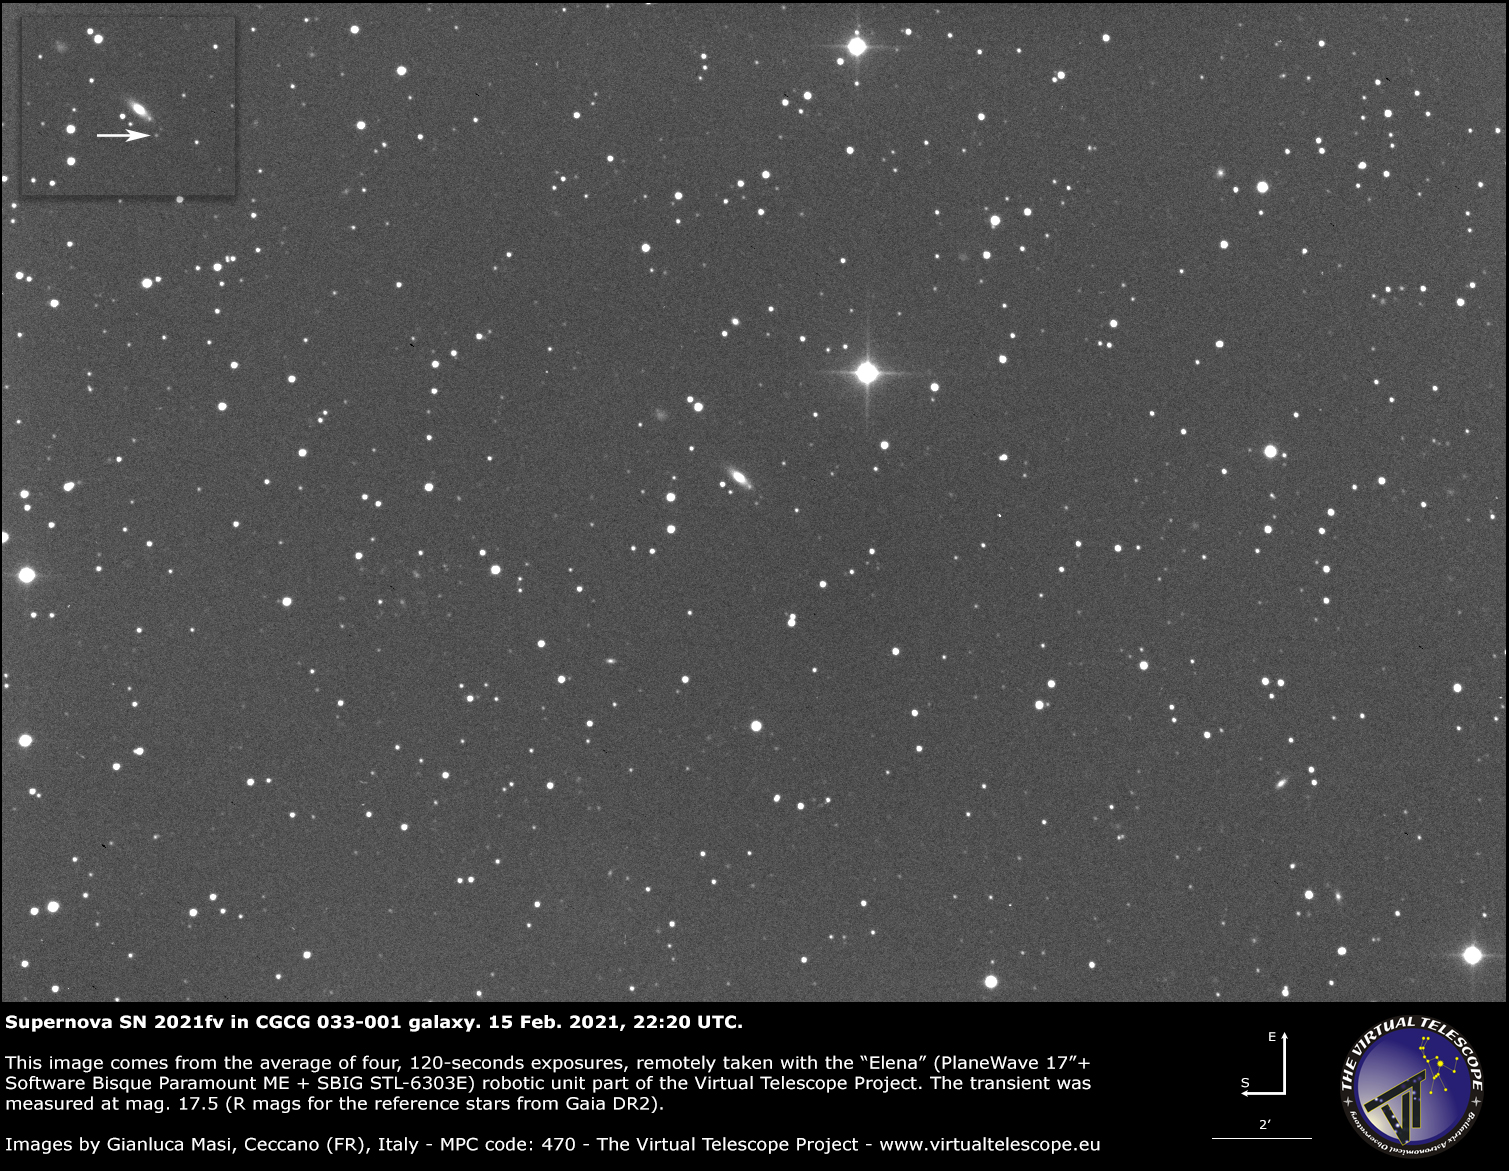 Supernova SN 2021fv in CGCG 033-001 galaxy: 15 Feb. 2021.